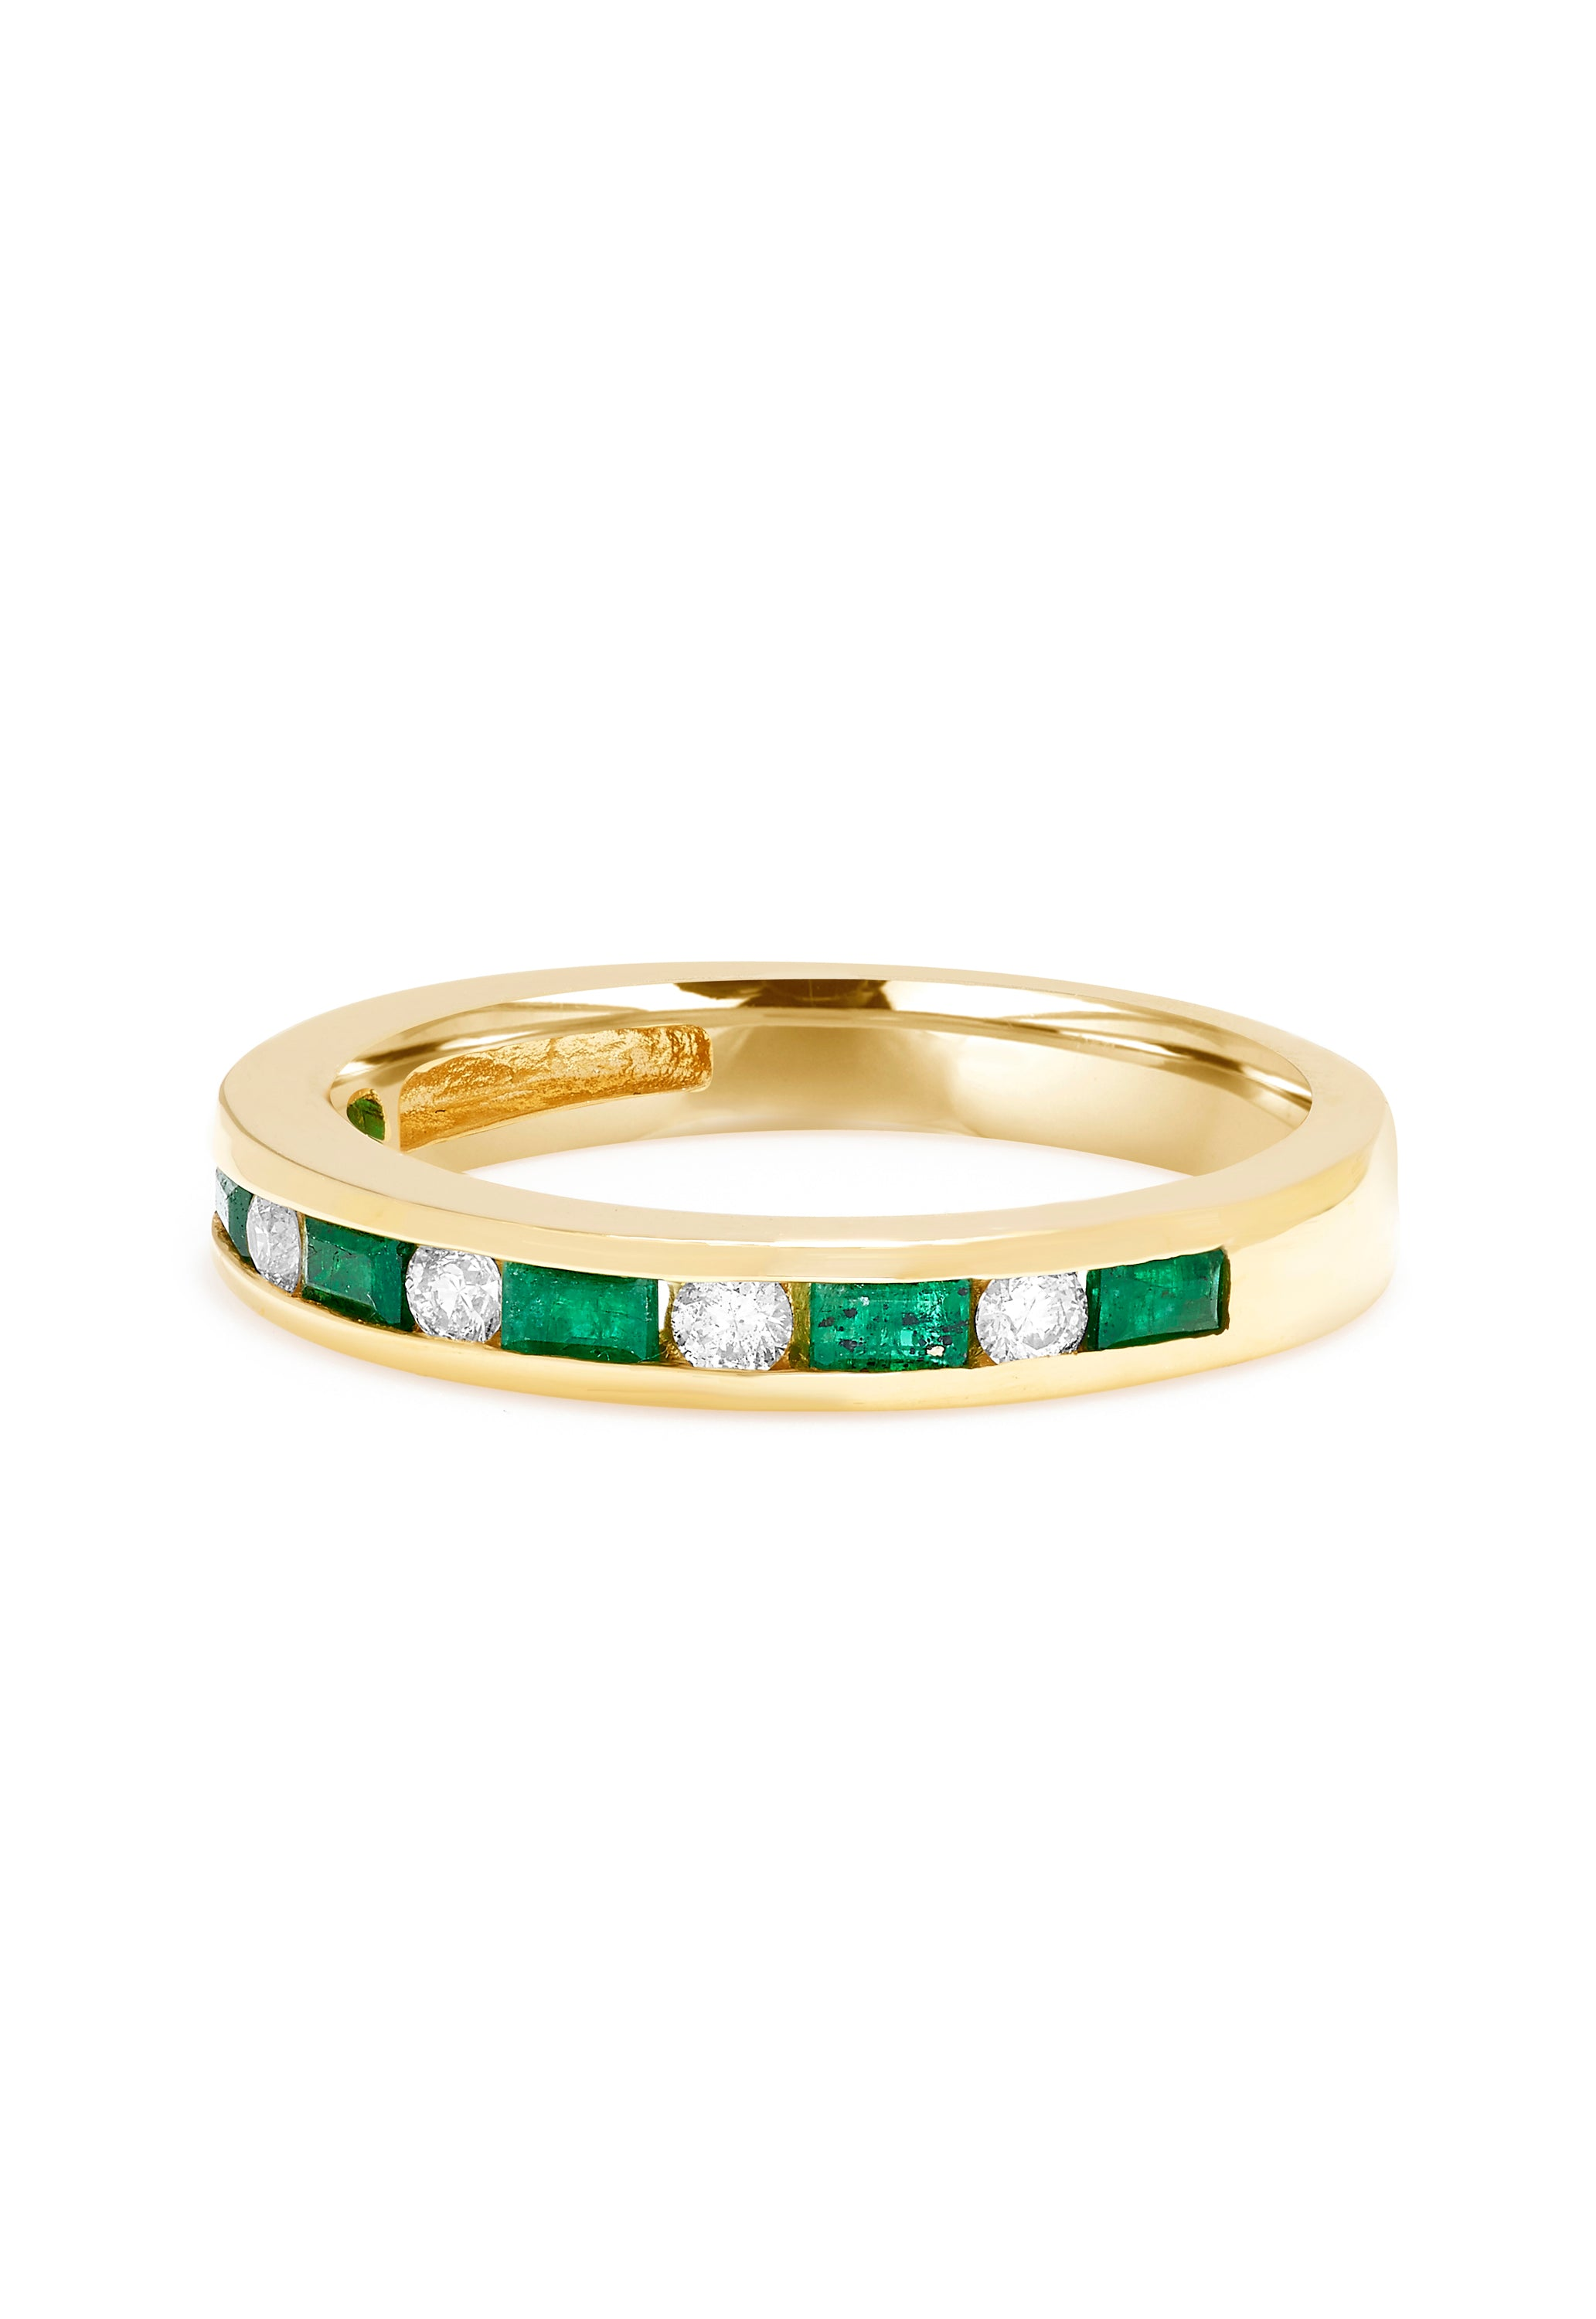 Effy Brasilica 14K Yellow Gold Emerald and Diamond Channel-Set Ring, 0.66 TCW